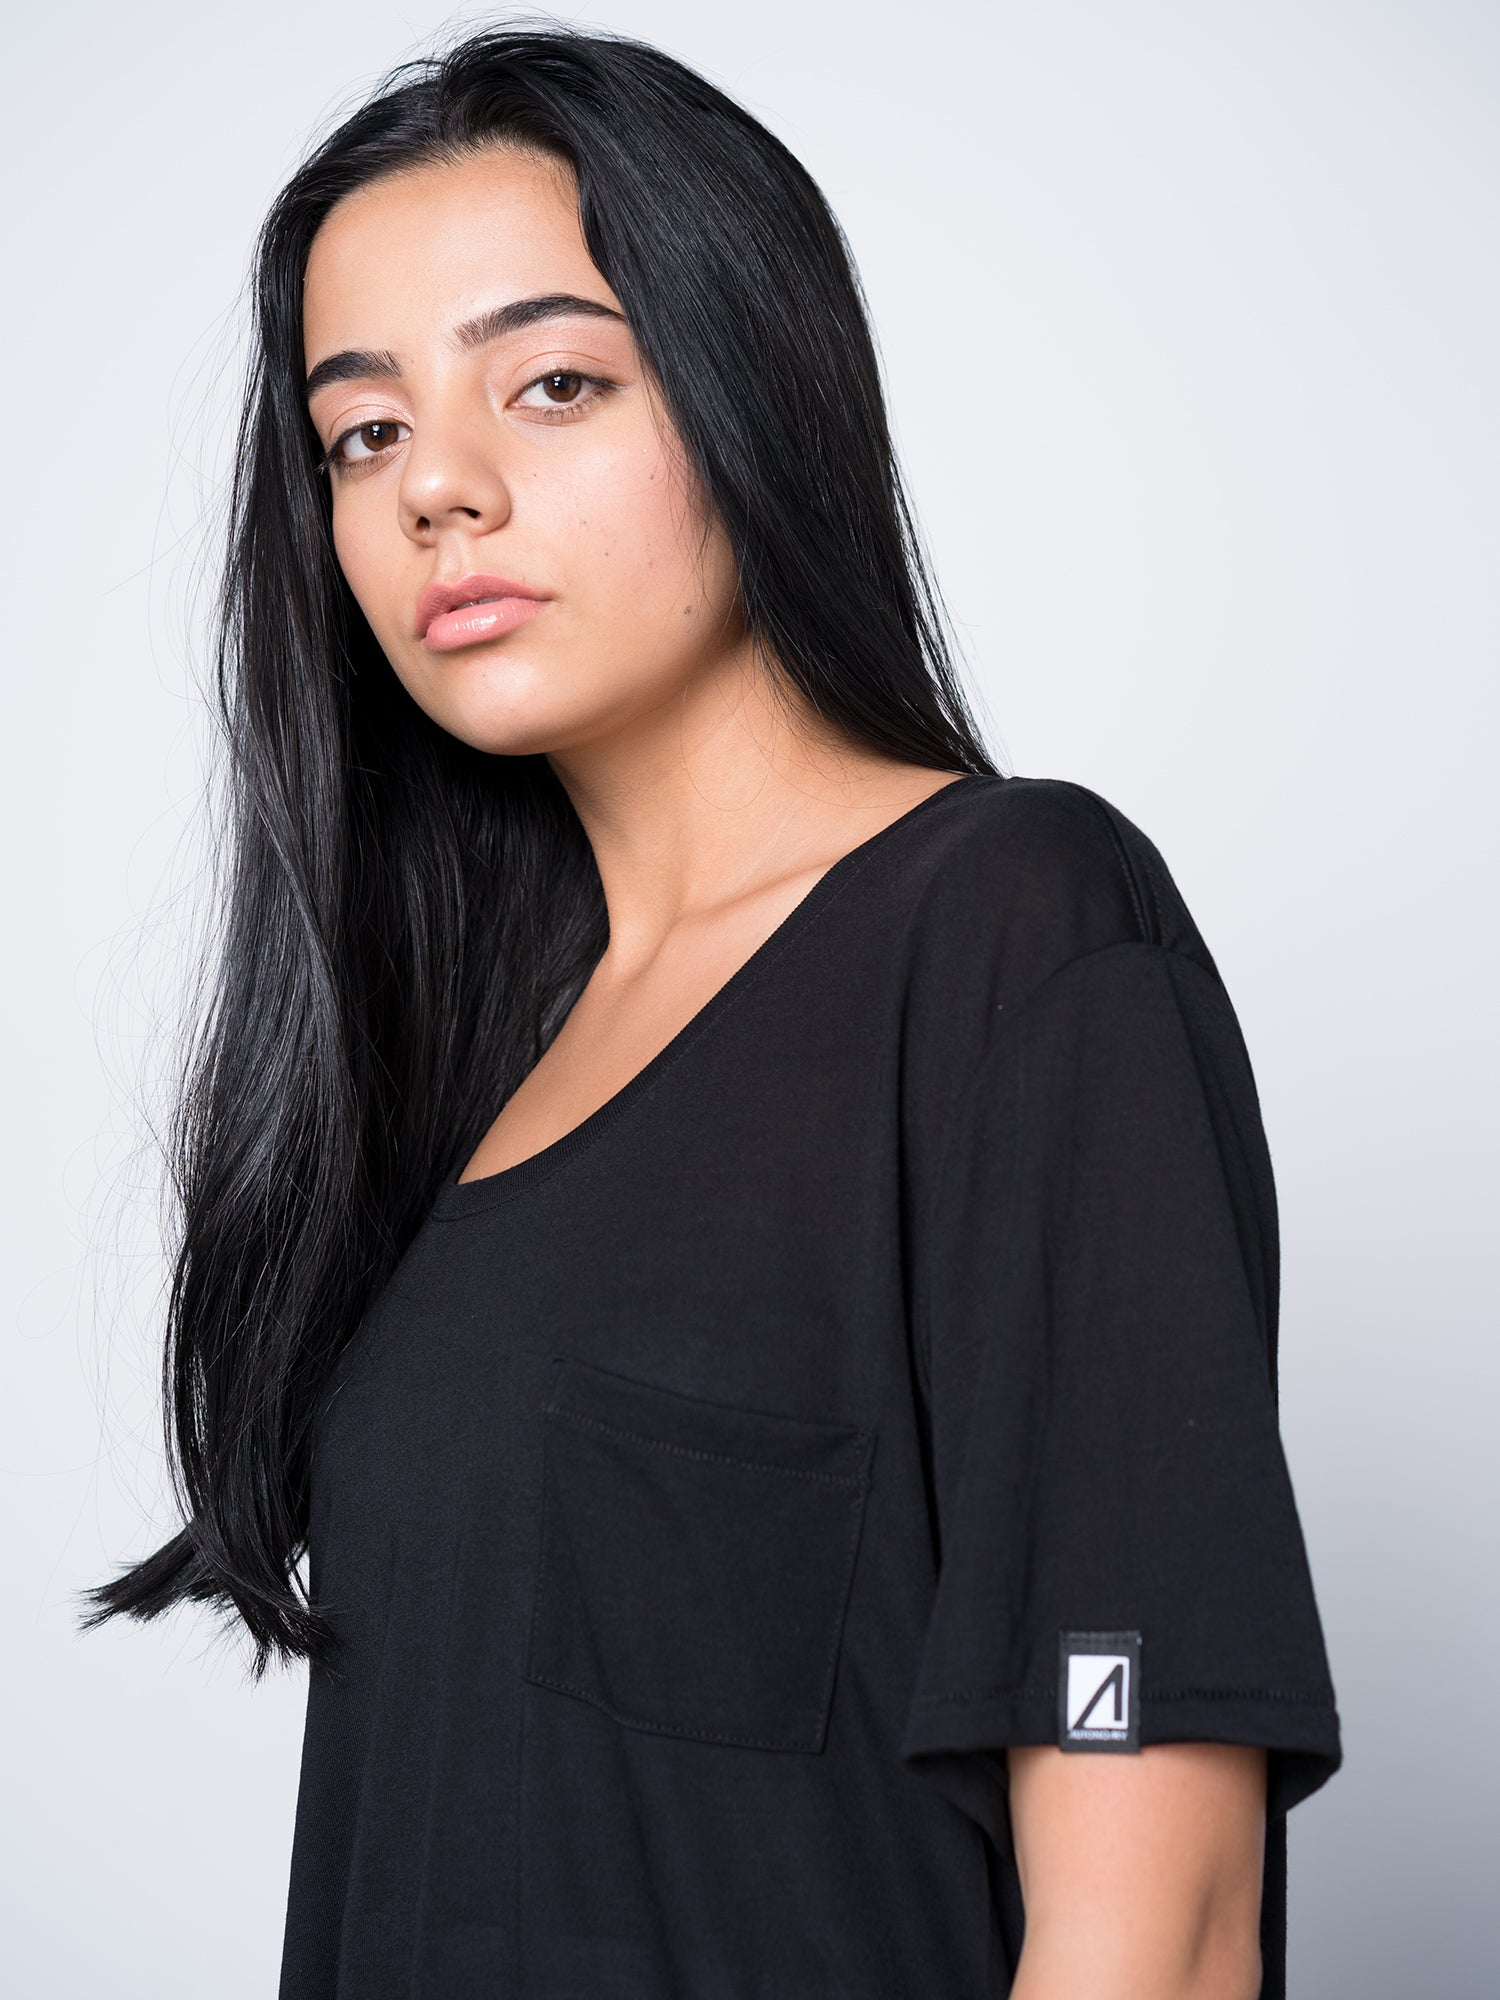 Side view of girl skateboarder wearing black Autonomy Arco shirt